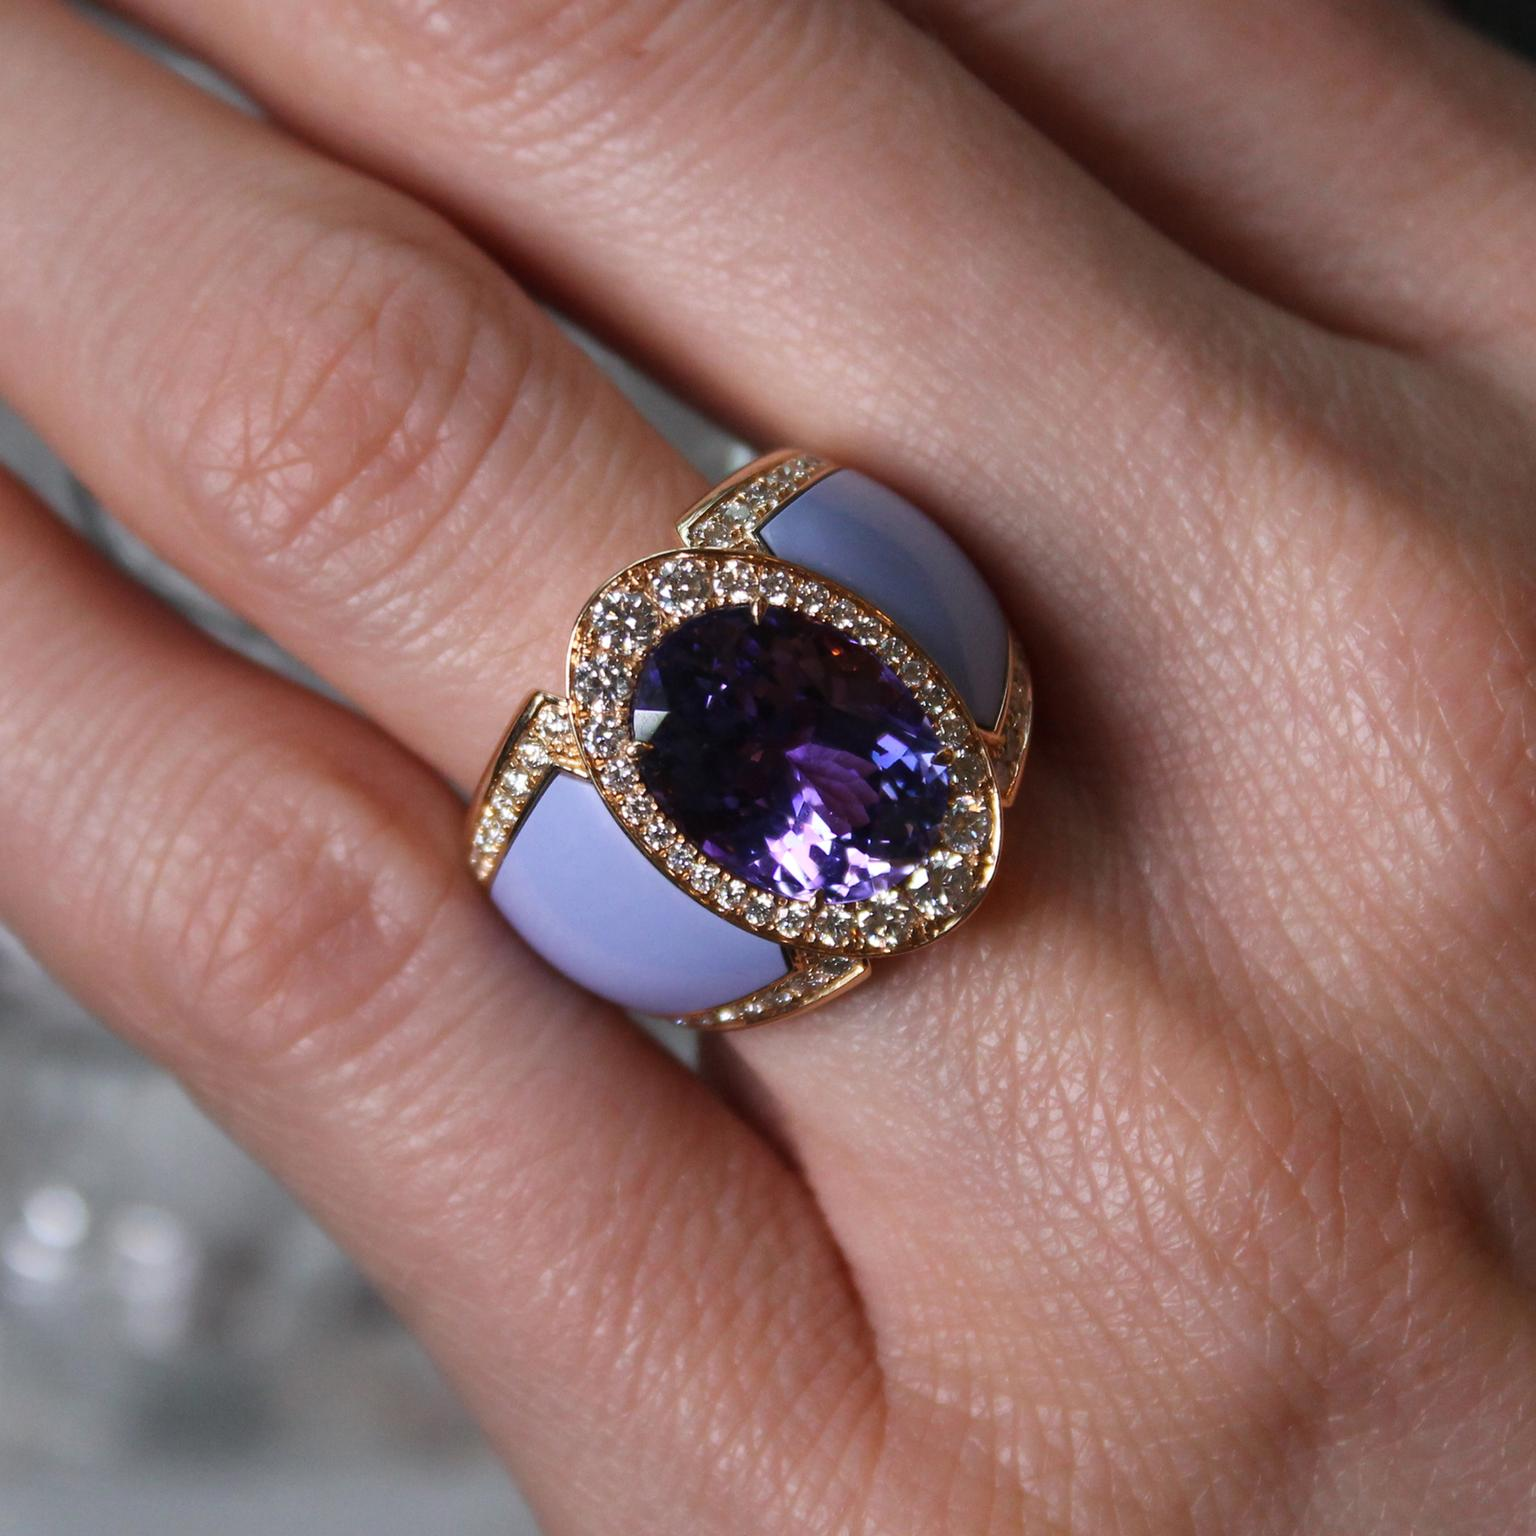 Doris Hangartner lilac tanzanite ring